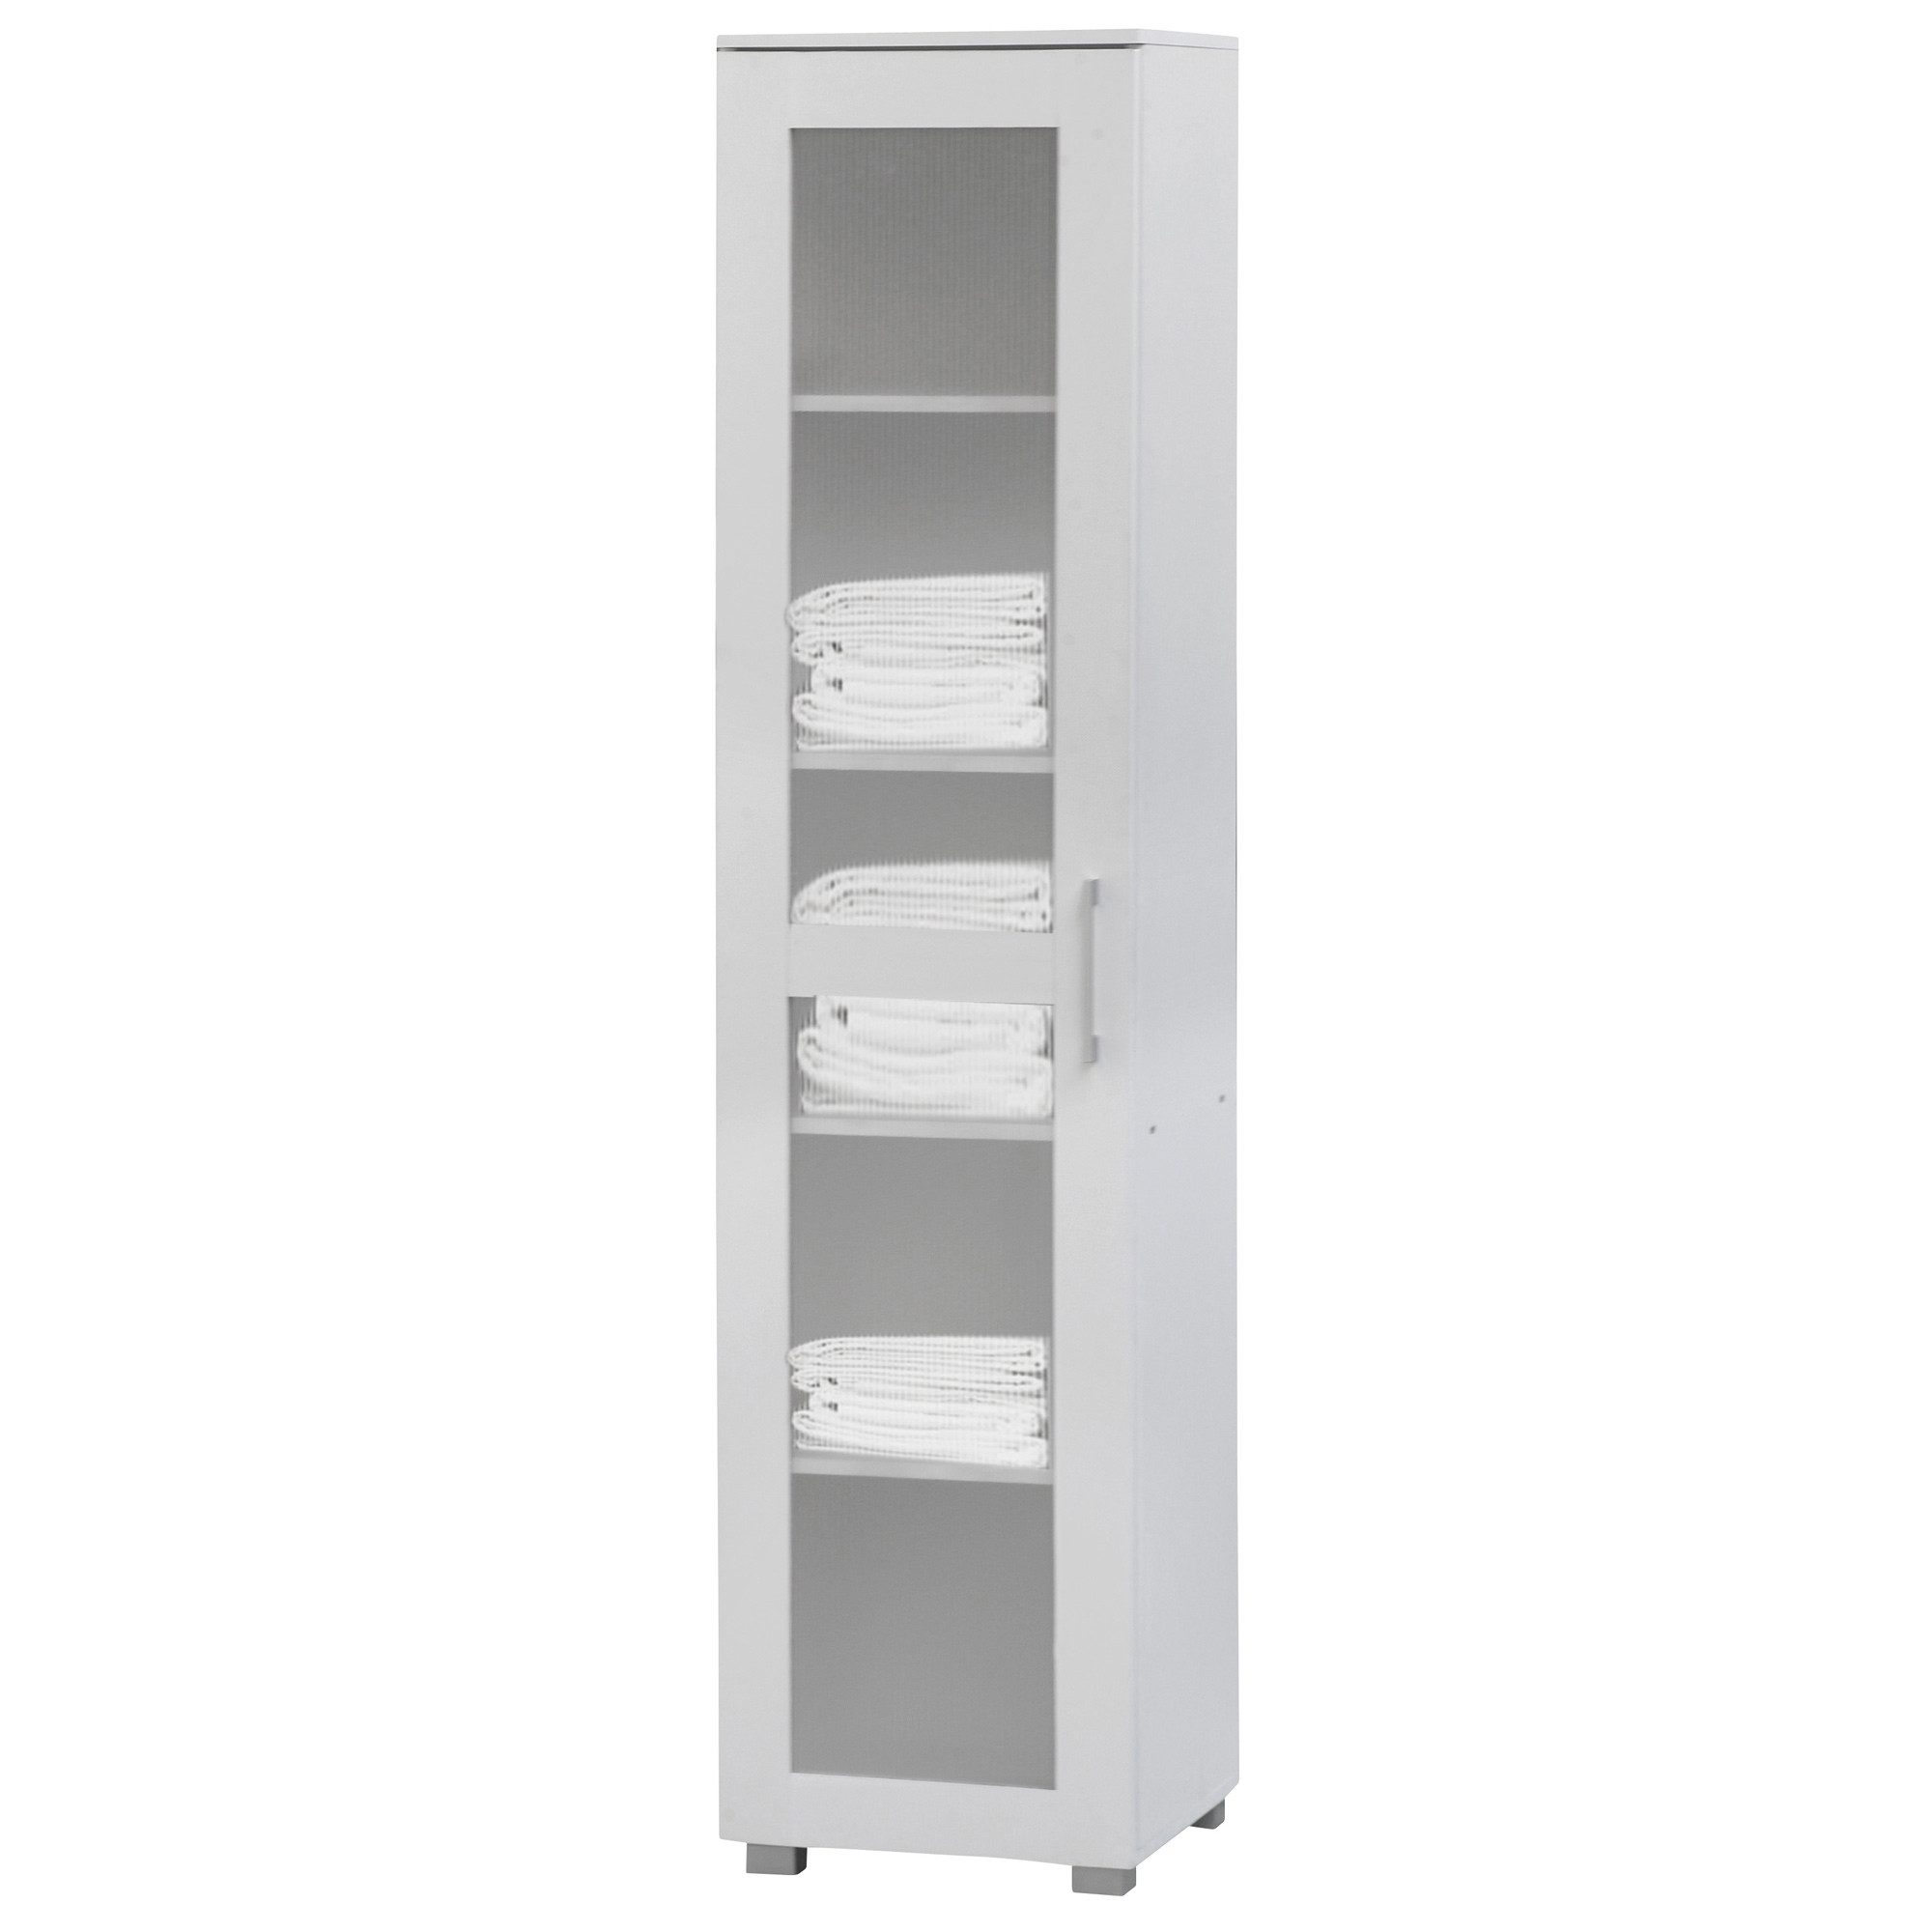 cabinets popular food built freestanding cupboard drawers size closet in stand beautiful shelves up cabinet storage most kitchen large of ideas base alone shallow pantry white tall with